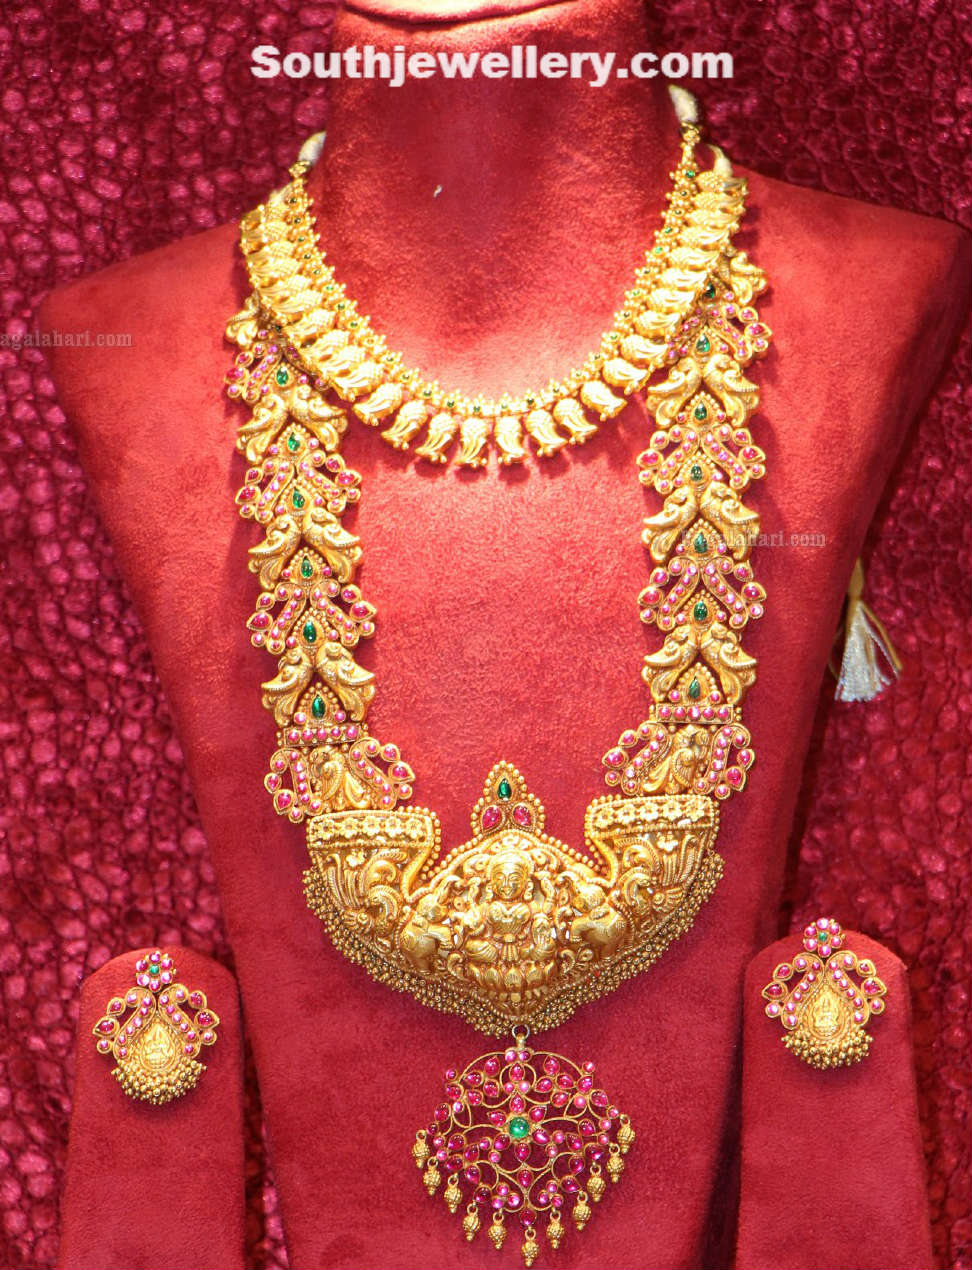 Temple Jewellery Set by CMR - Jewellery Designs